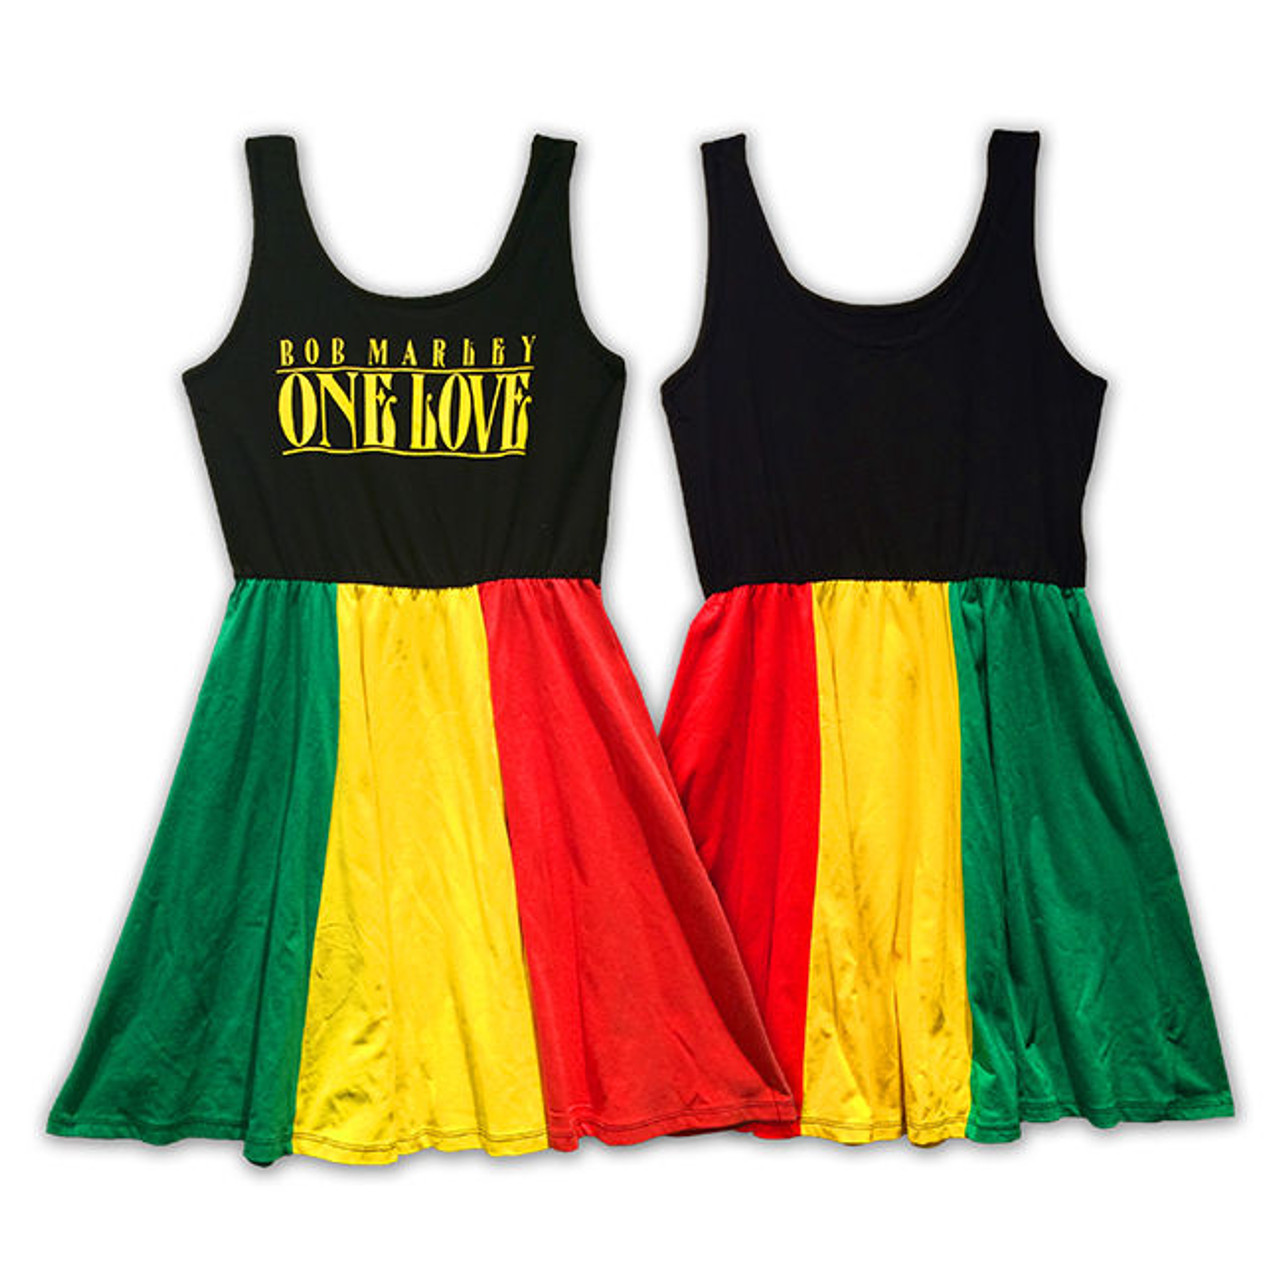 78c91345c545c3 Bob Marley One Love Rasta Tank Dress Womens Music Reggae Jamaica Ska  ZRBM1562 - Fearless Apparel